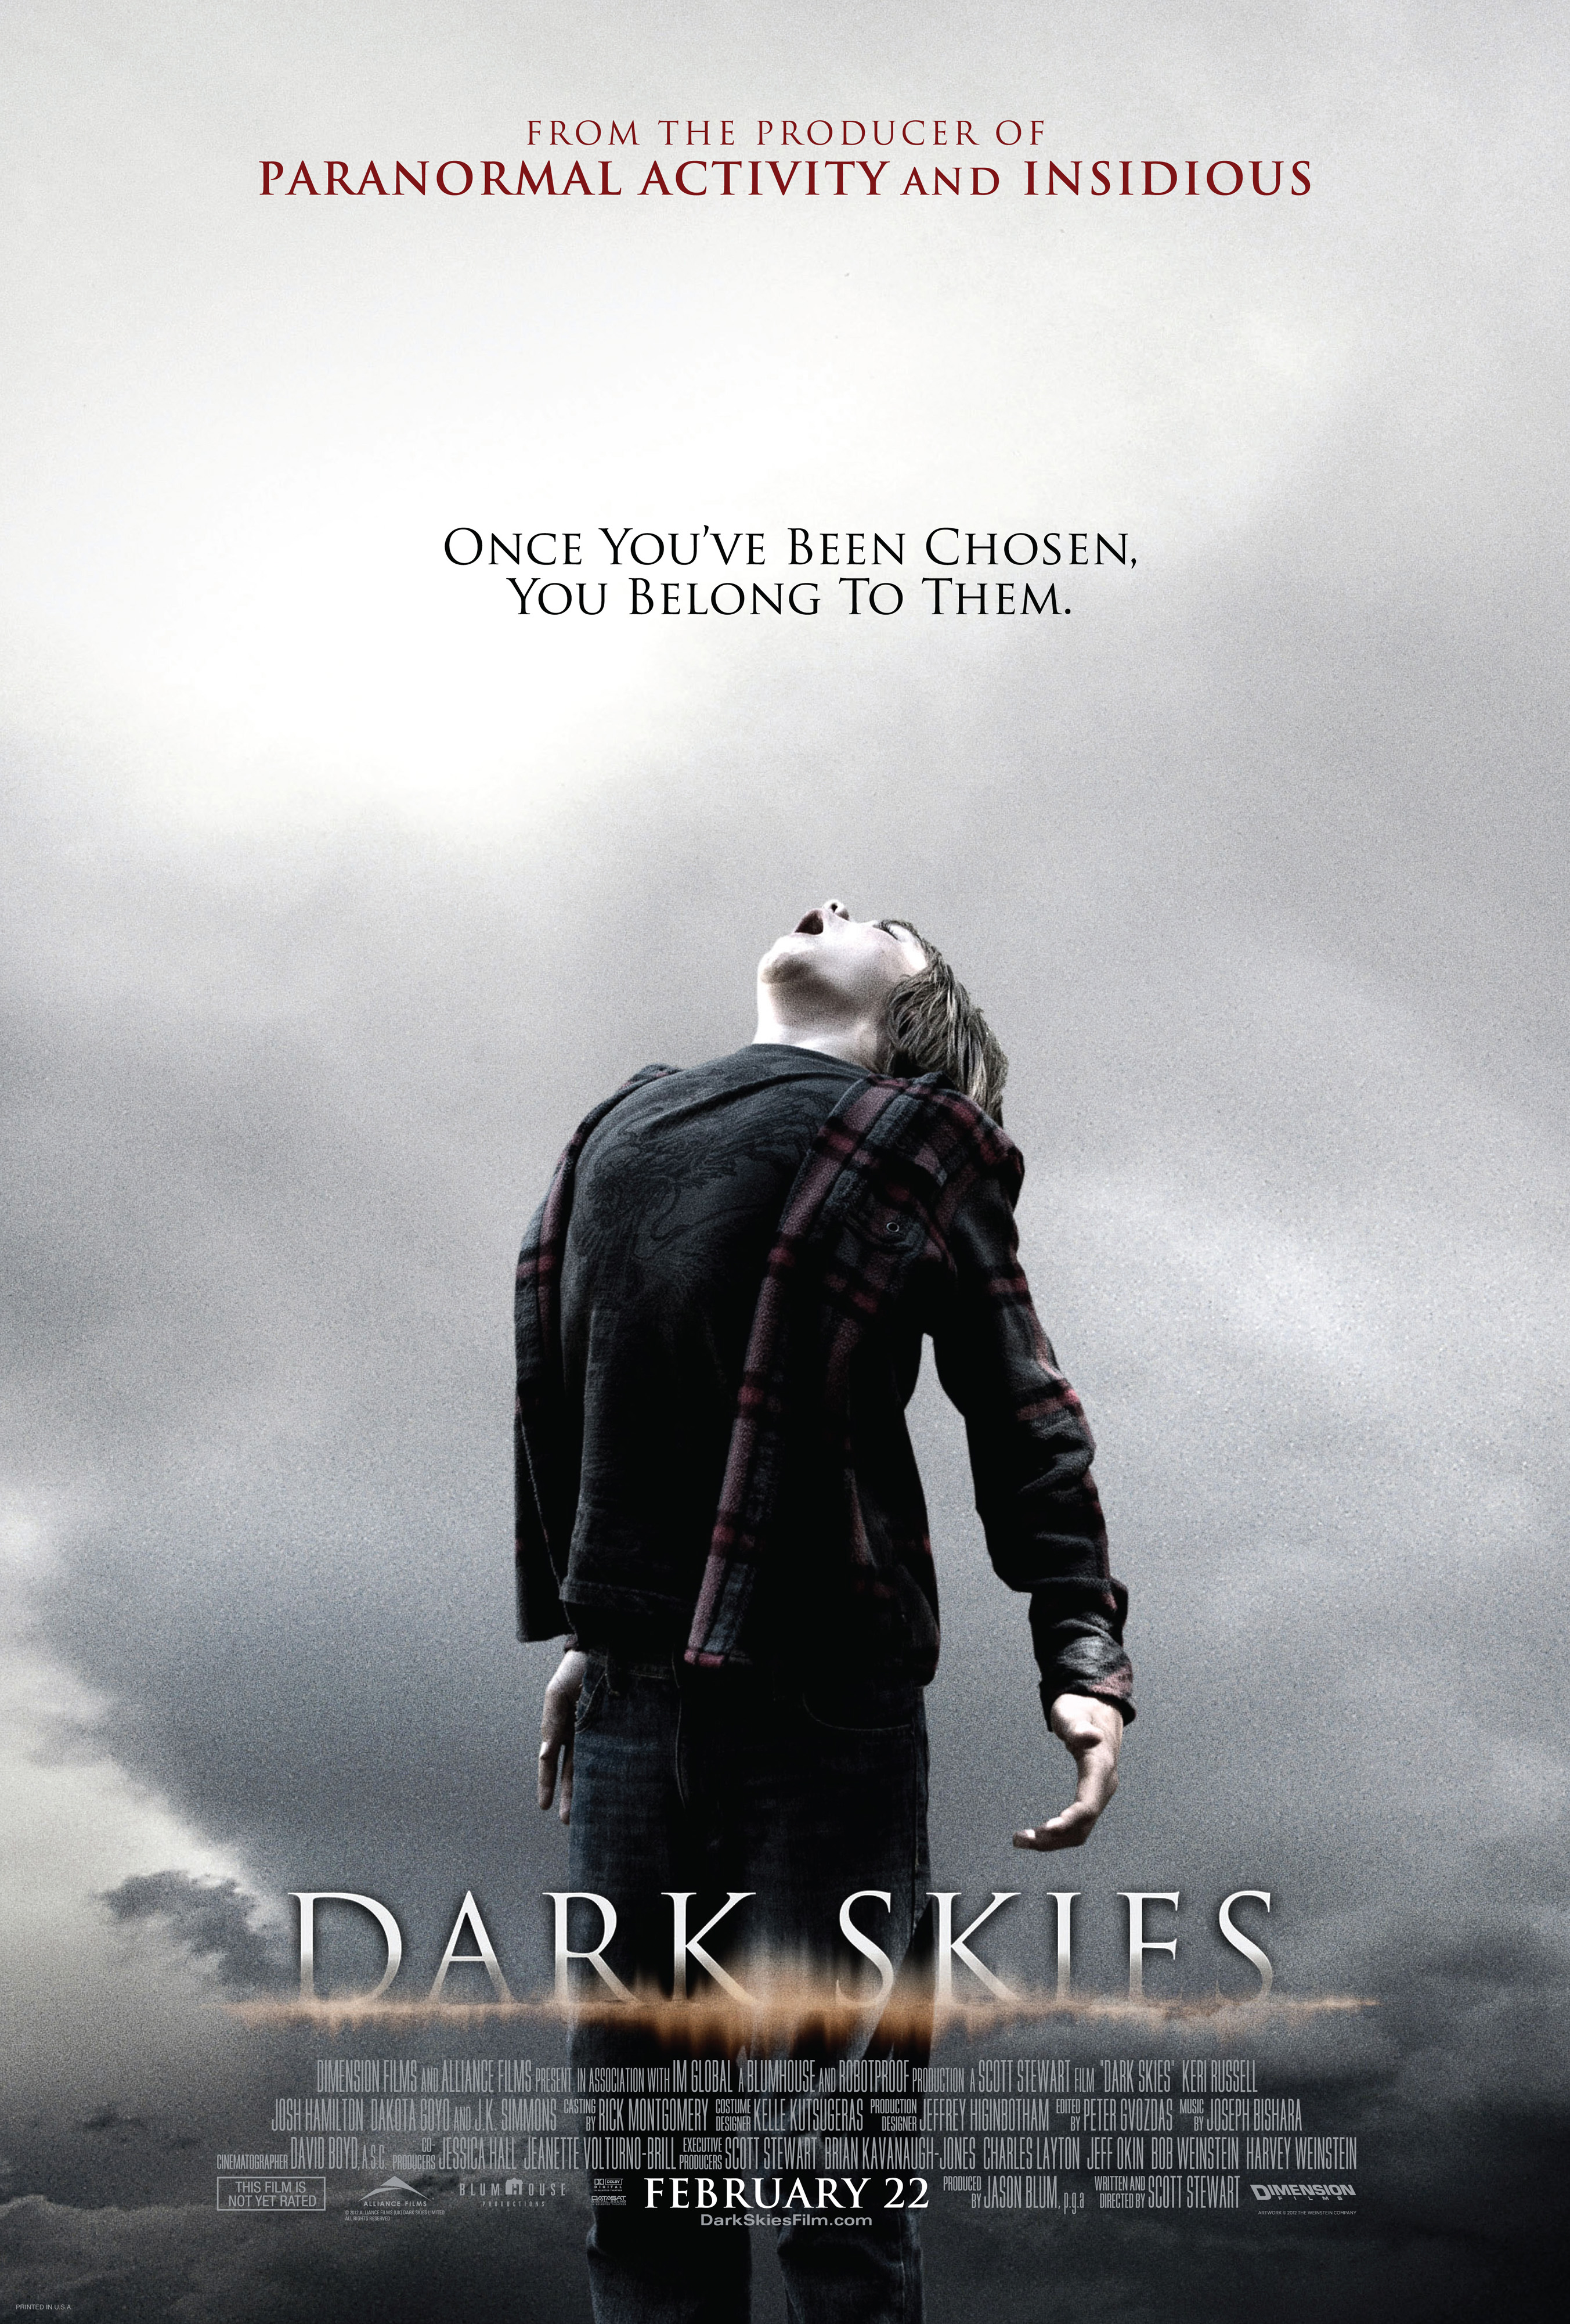 Producer Jason Blum Participates In IGNs Dark Skies Live UStream